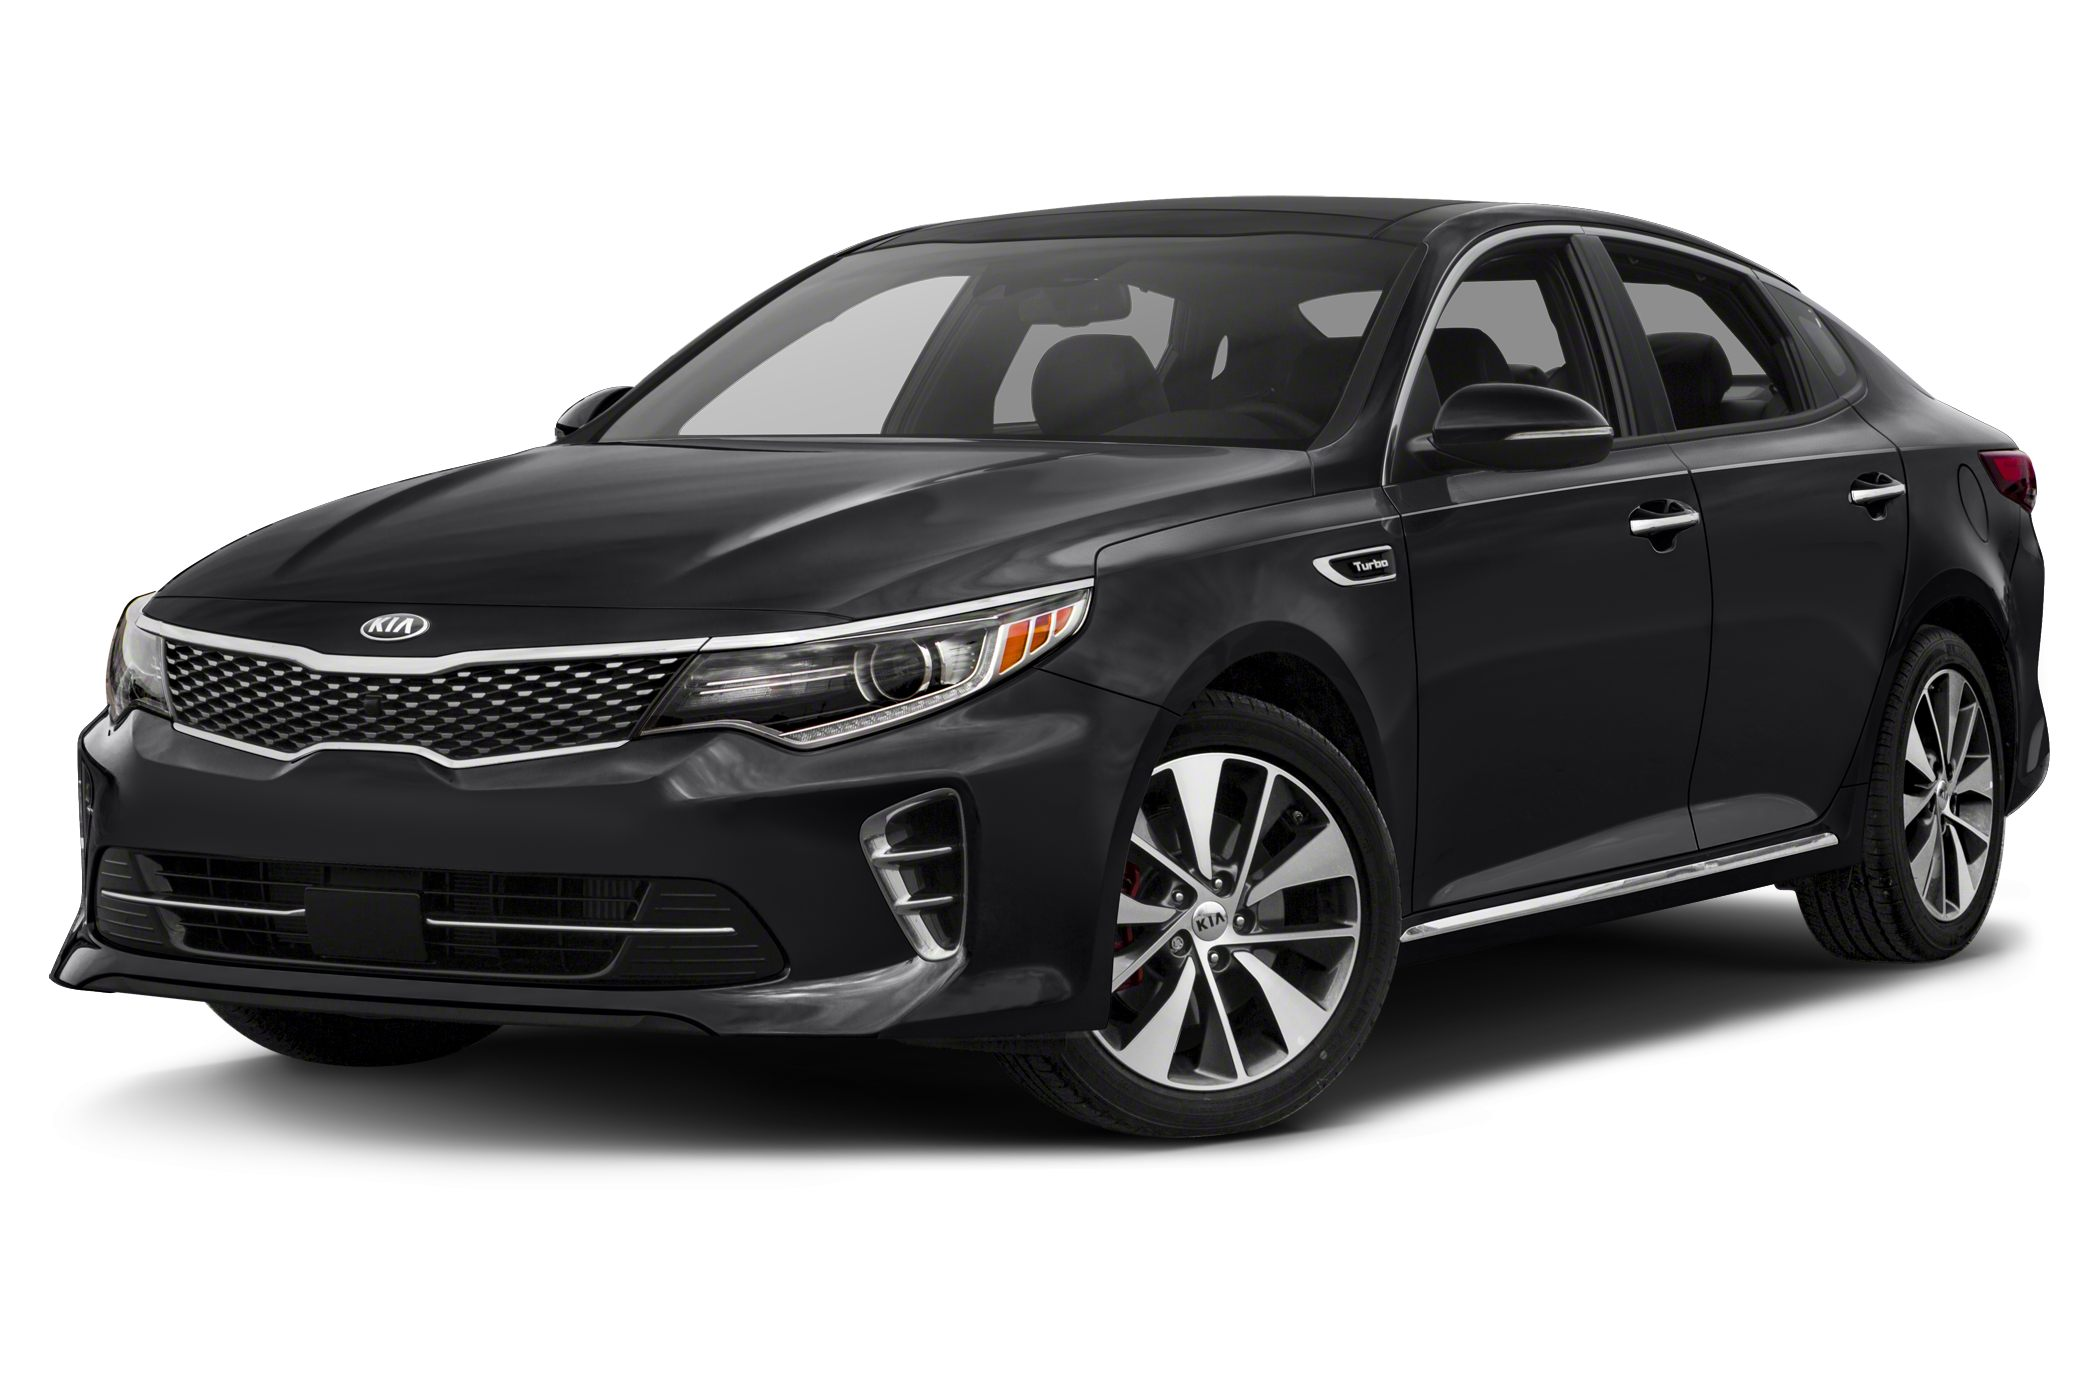 2016 Kia Optima SXL Turbo Miles 15Color Titanium Silver Stock R3243 VIN 5XXGV4L22GG077174